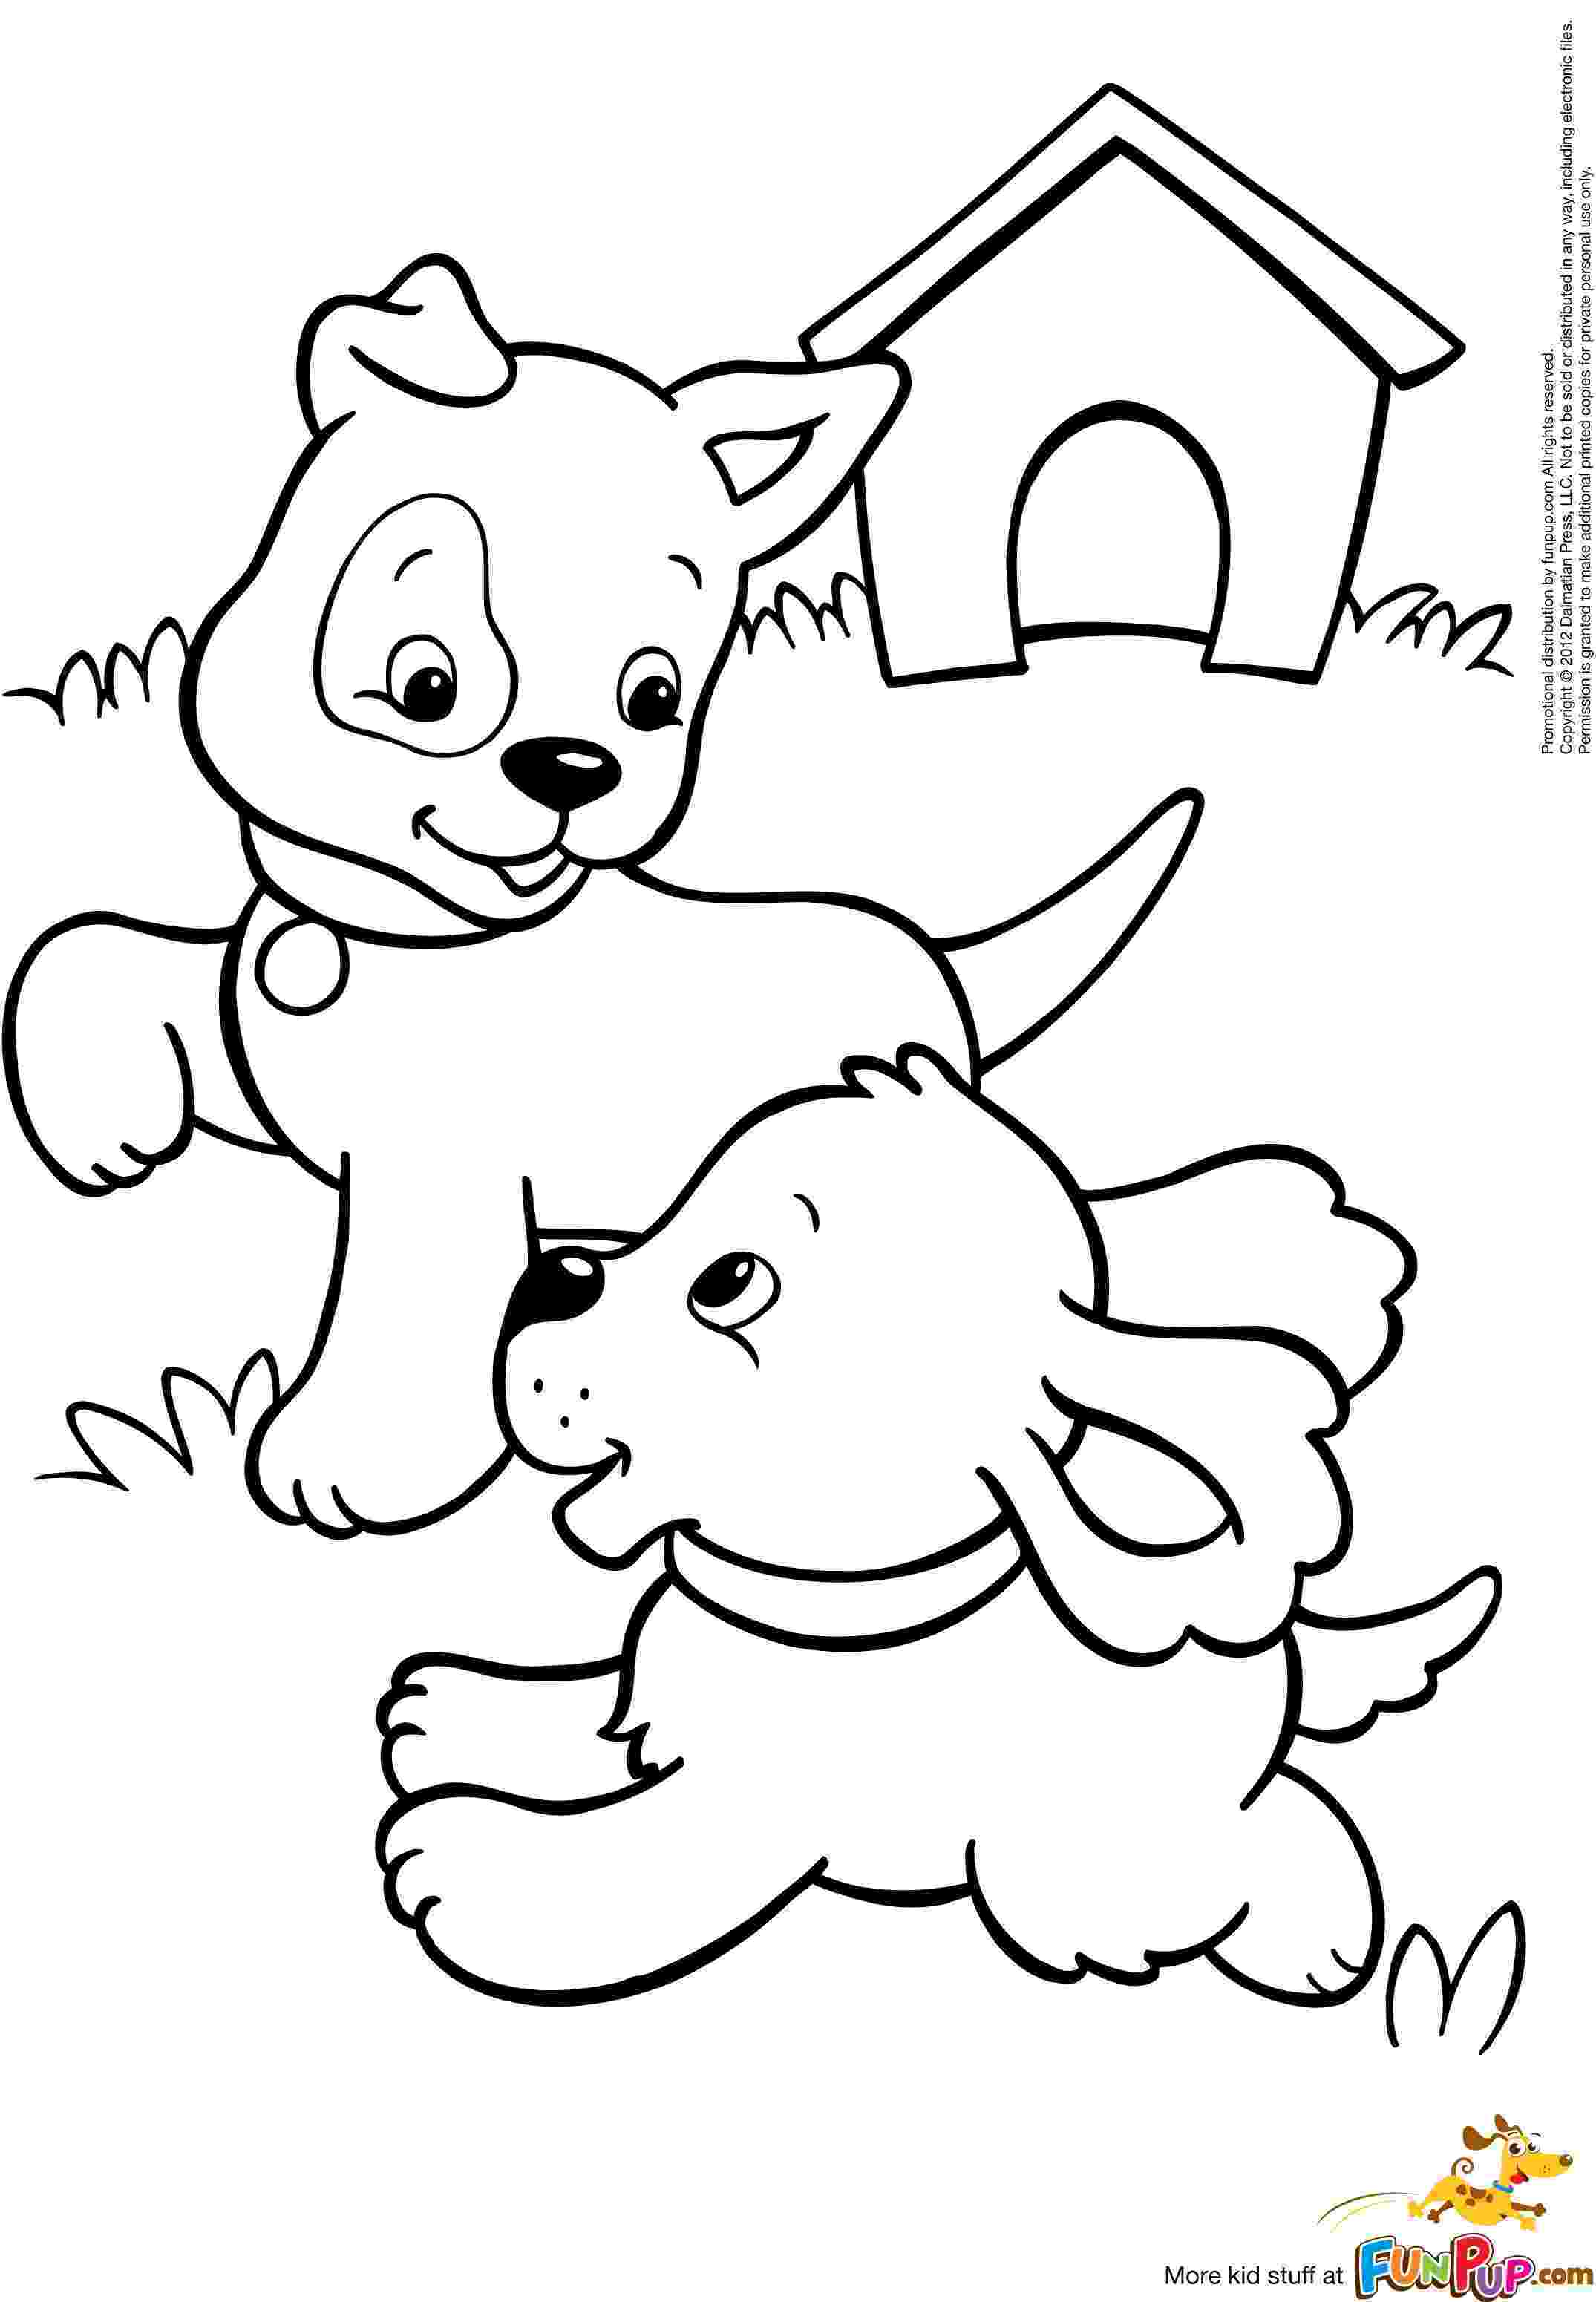 printable coloring pages dogs printable dog coloring pages for kids cool2bkids printable pages coloring dogs